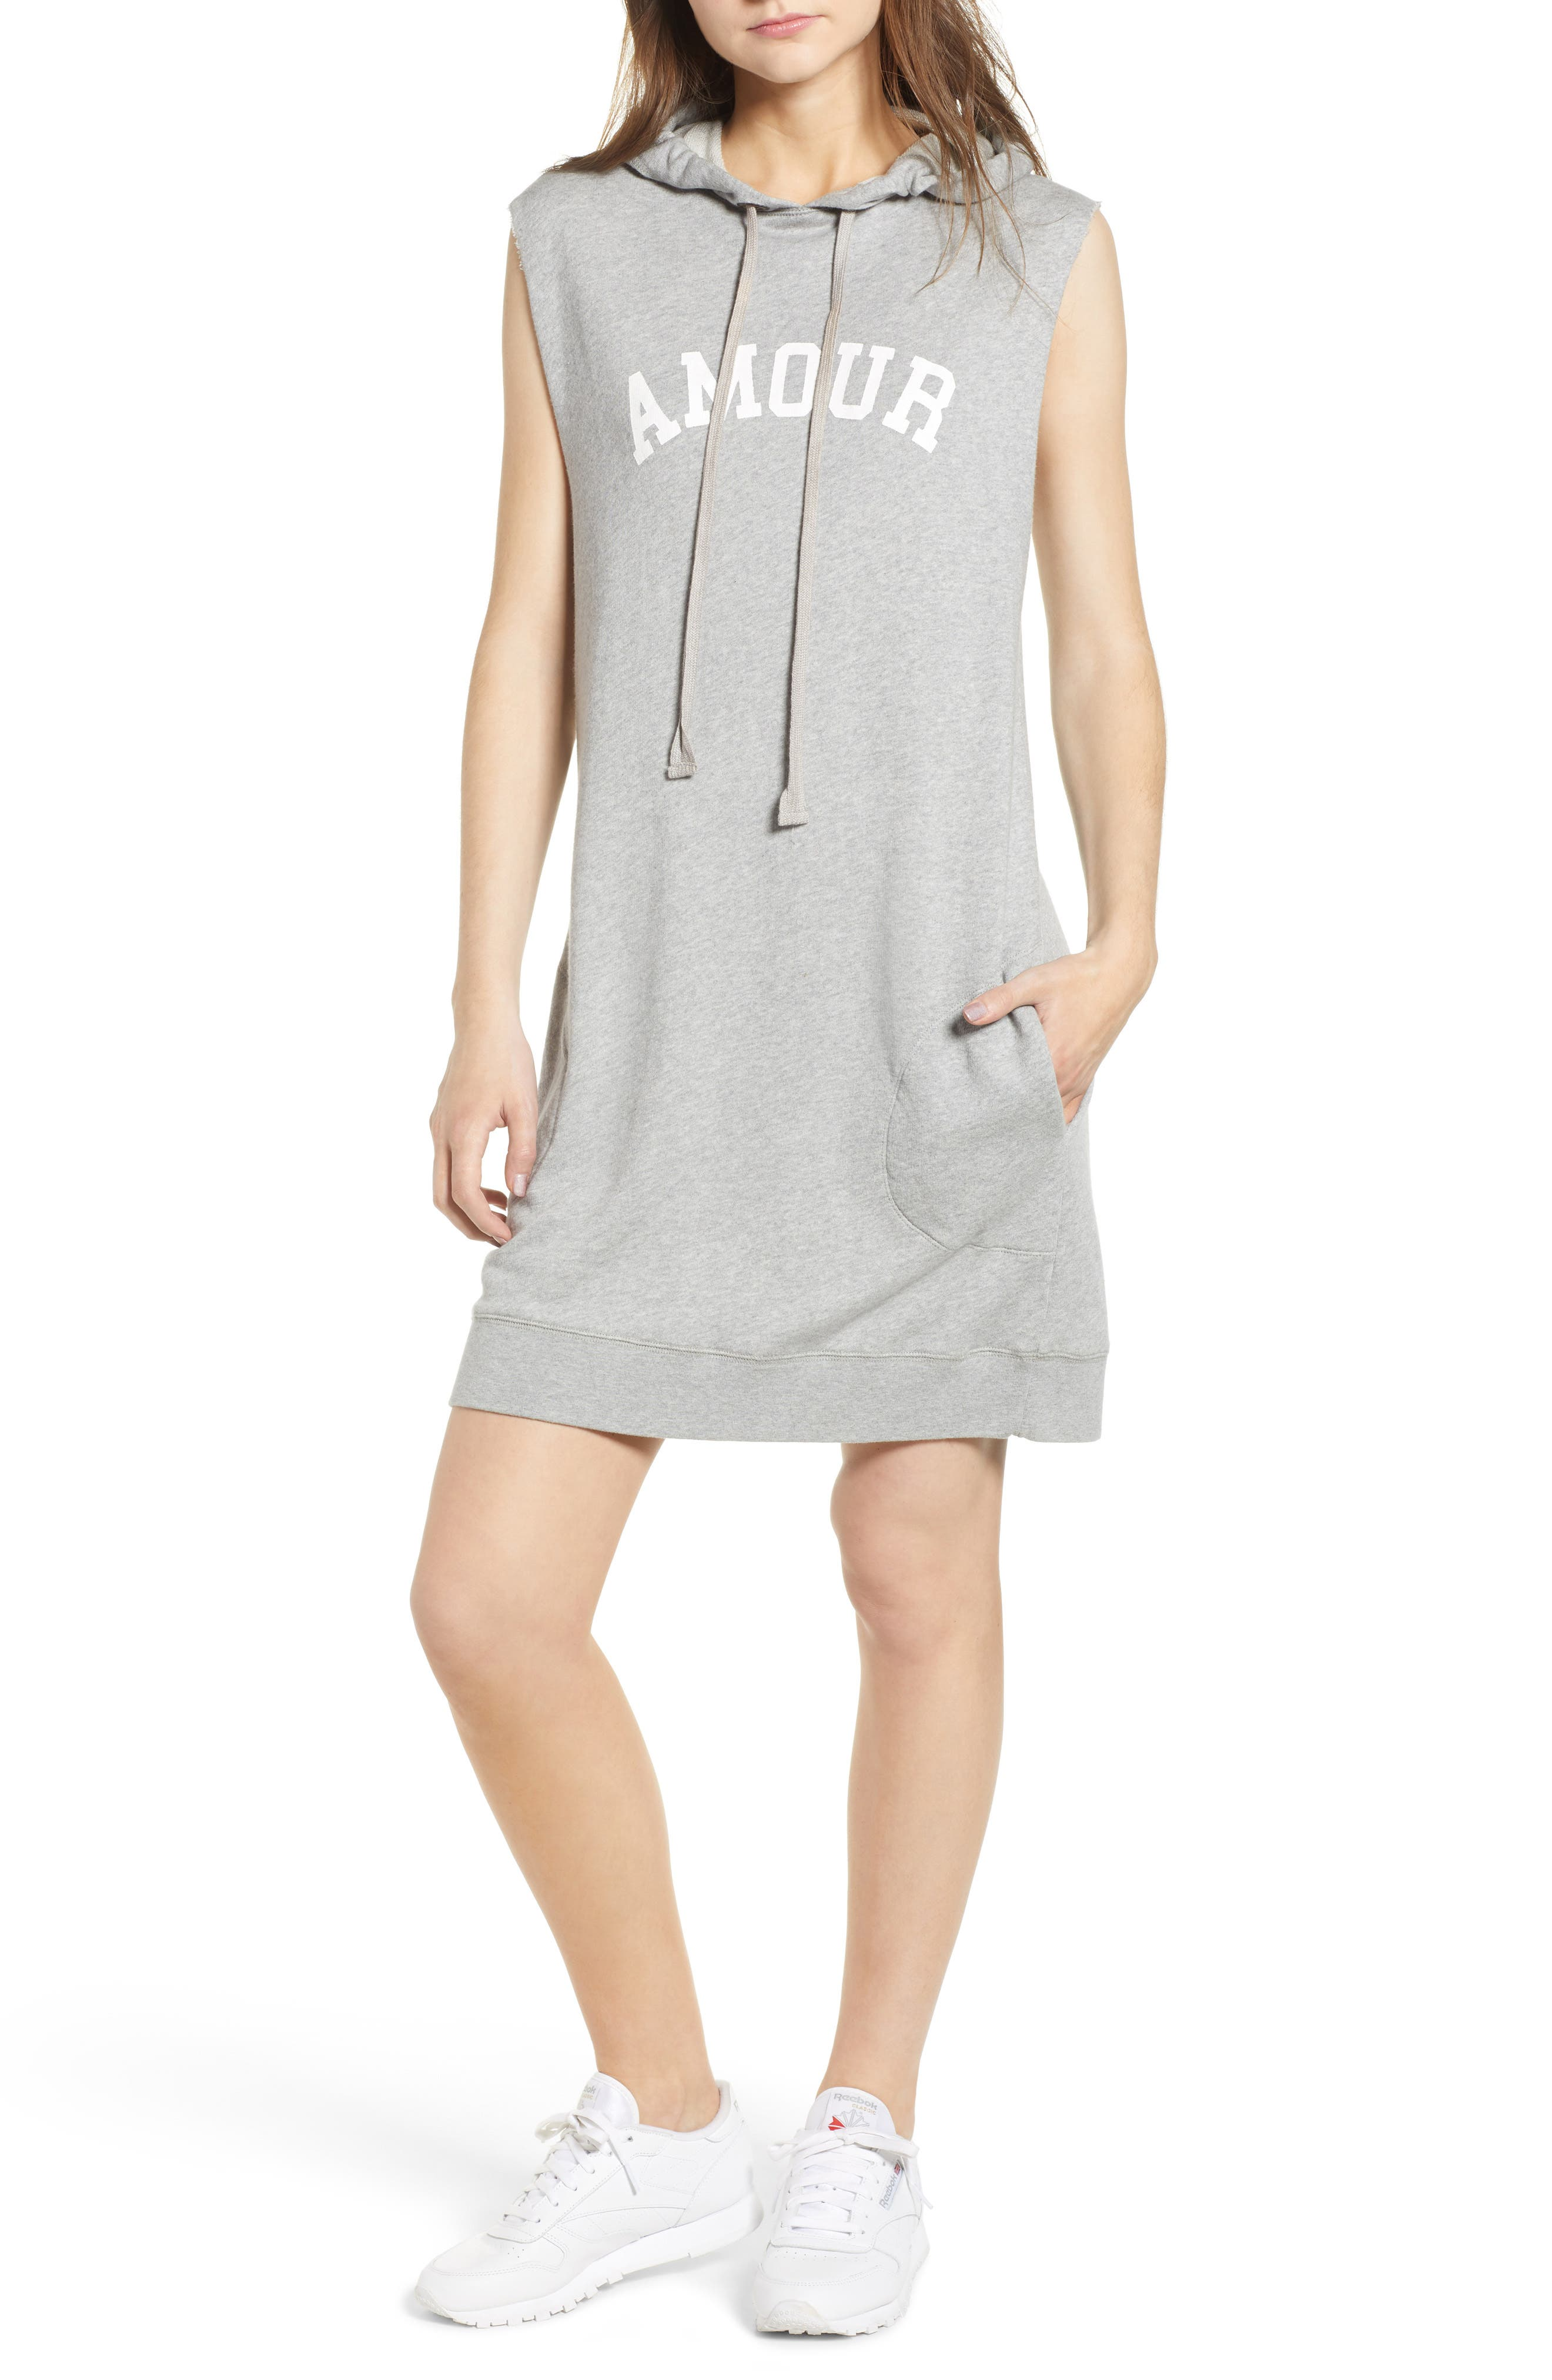 Sia Bis Hooded Dress,                             Main thumbnail 1, color,                             Melange Grey